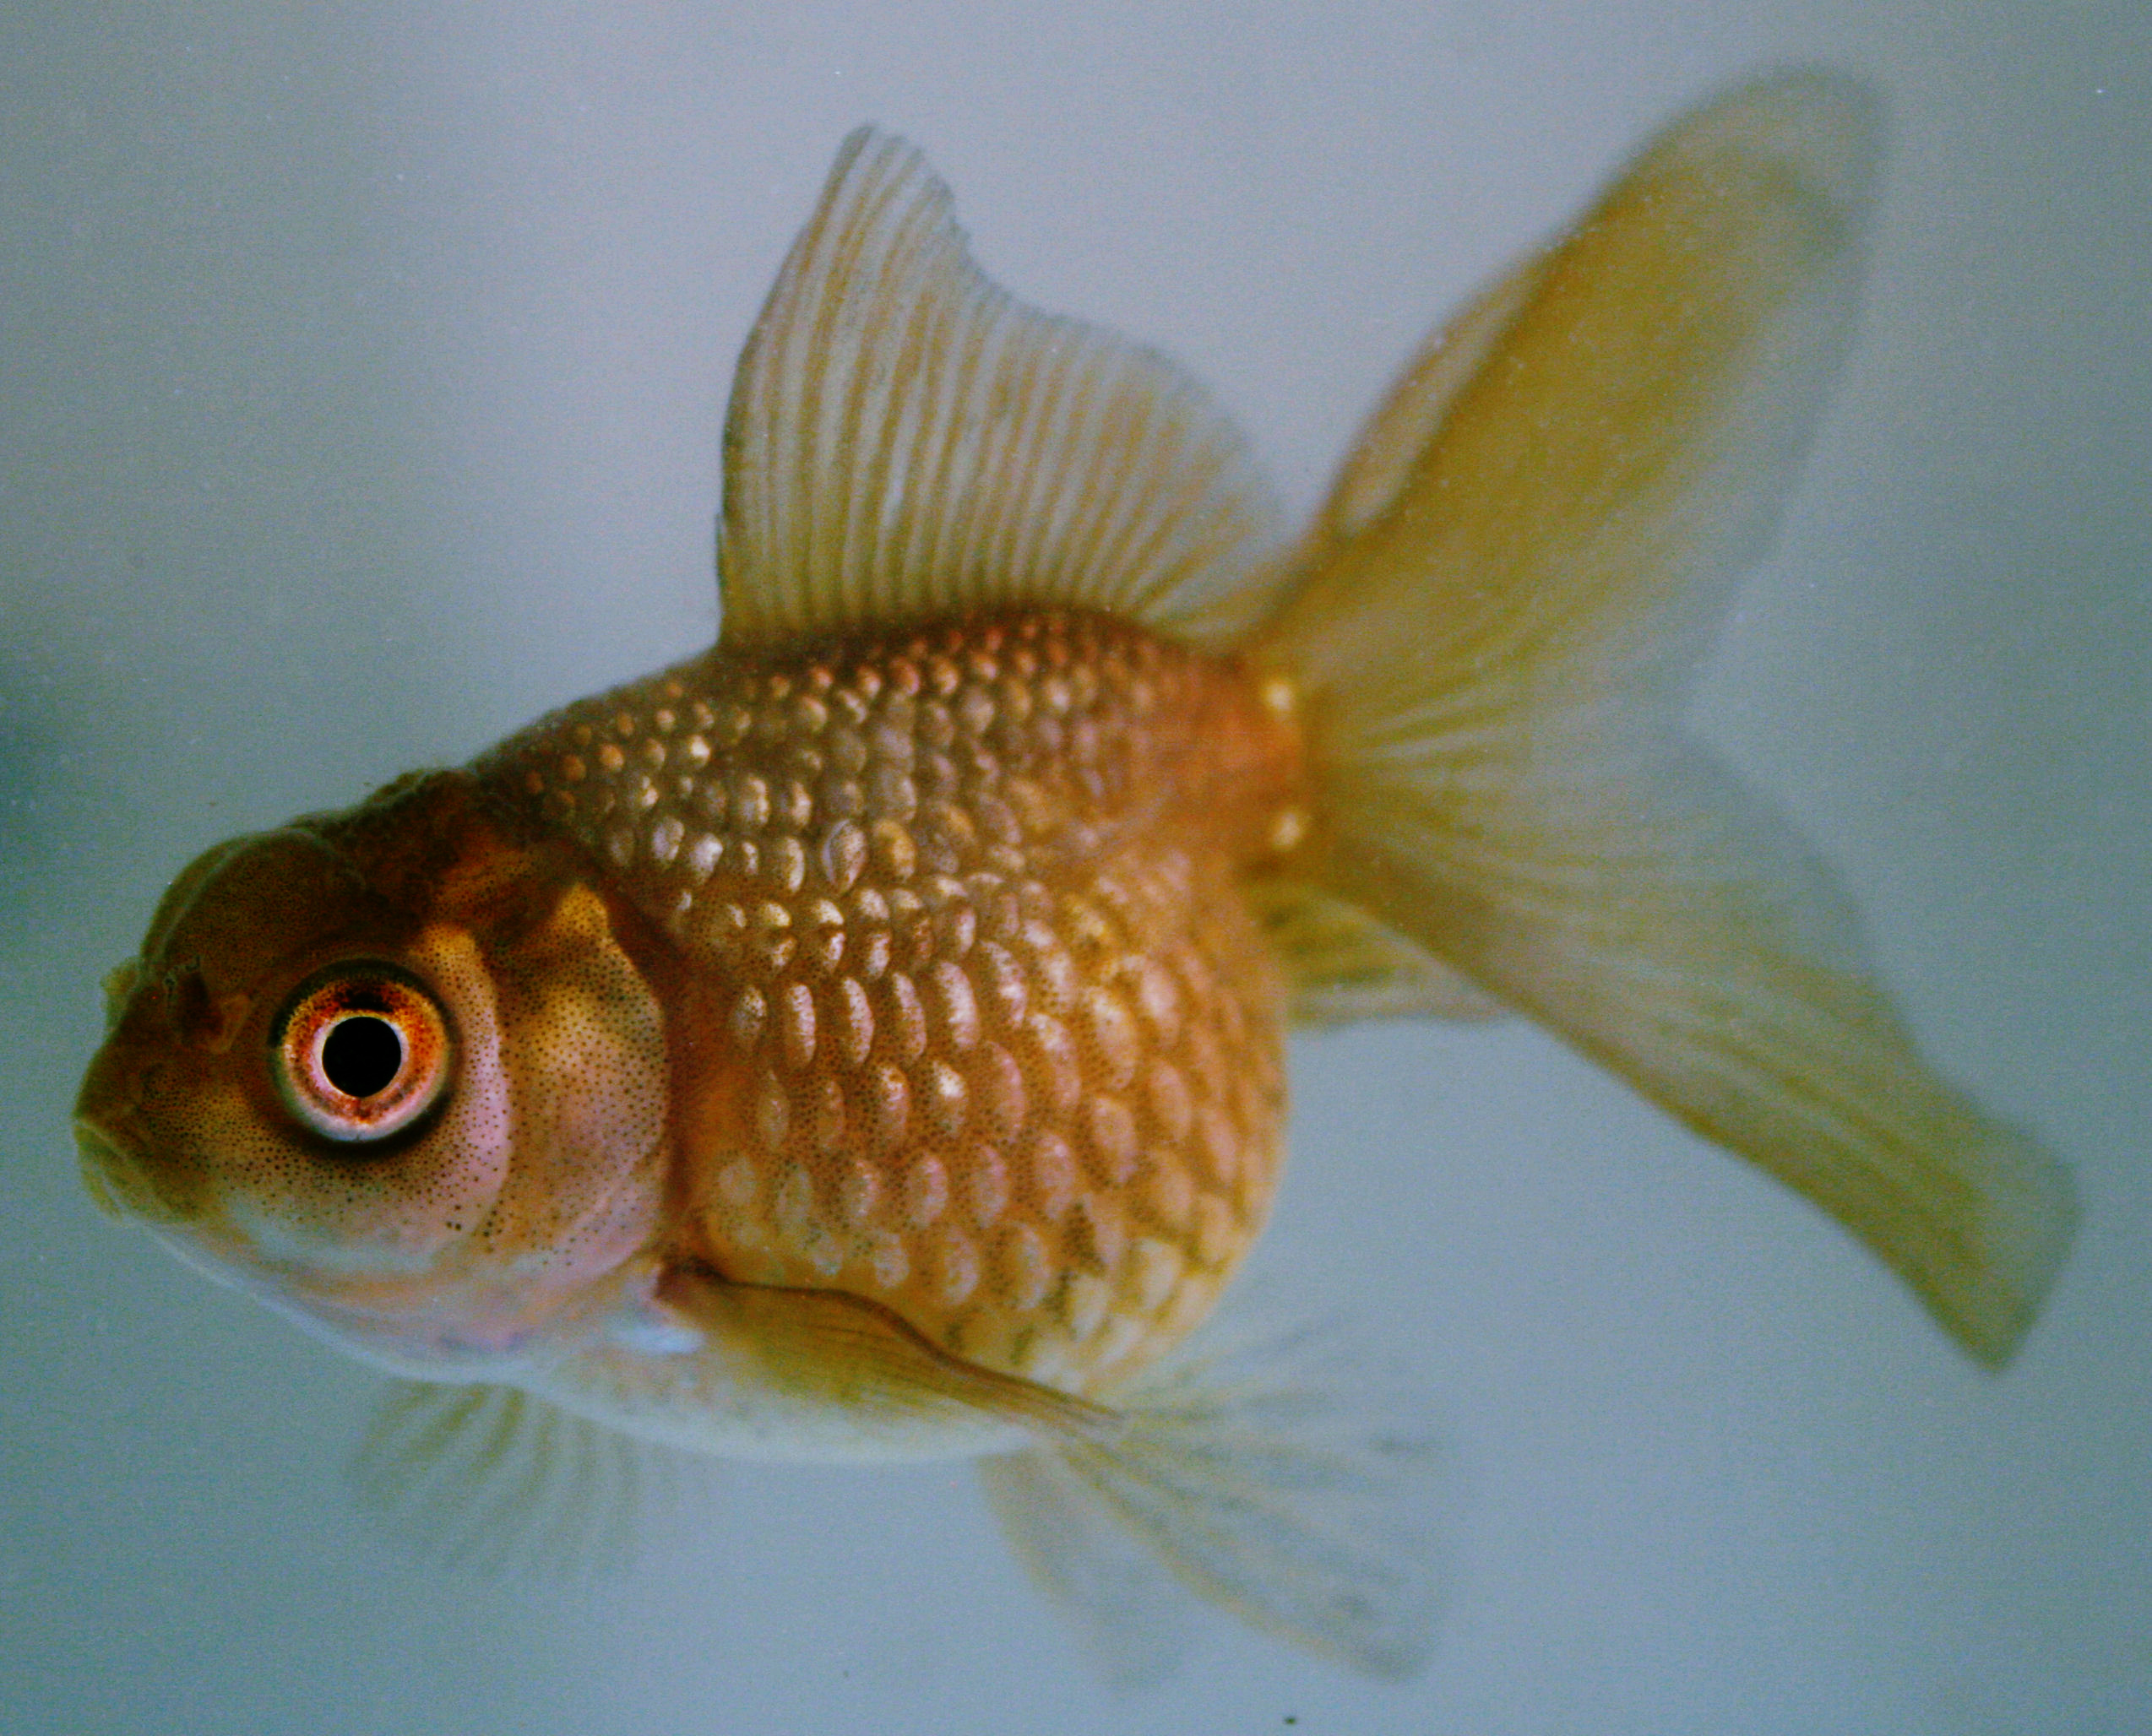 File:Chocolate pearlscale goldfish.JPG - Wikimedia Commons